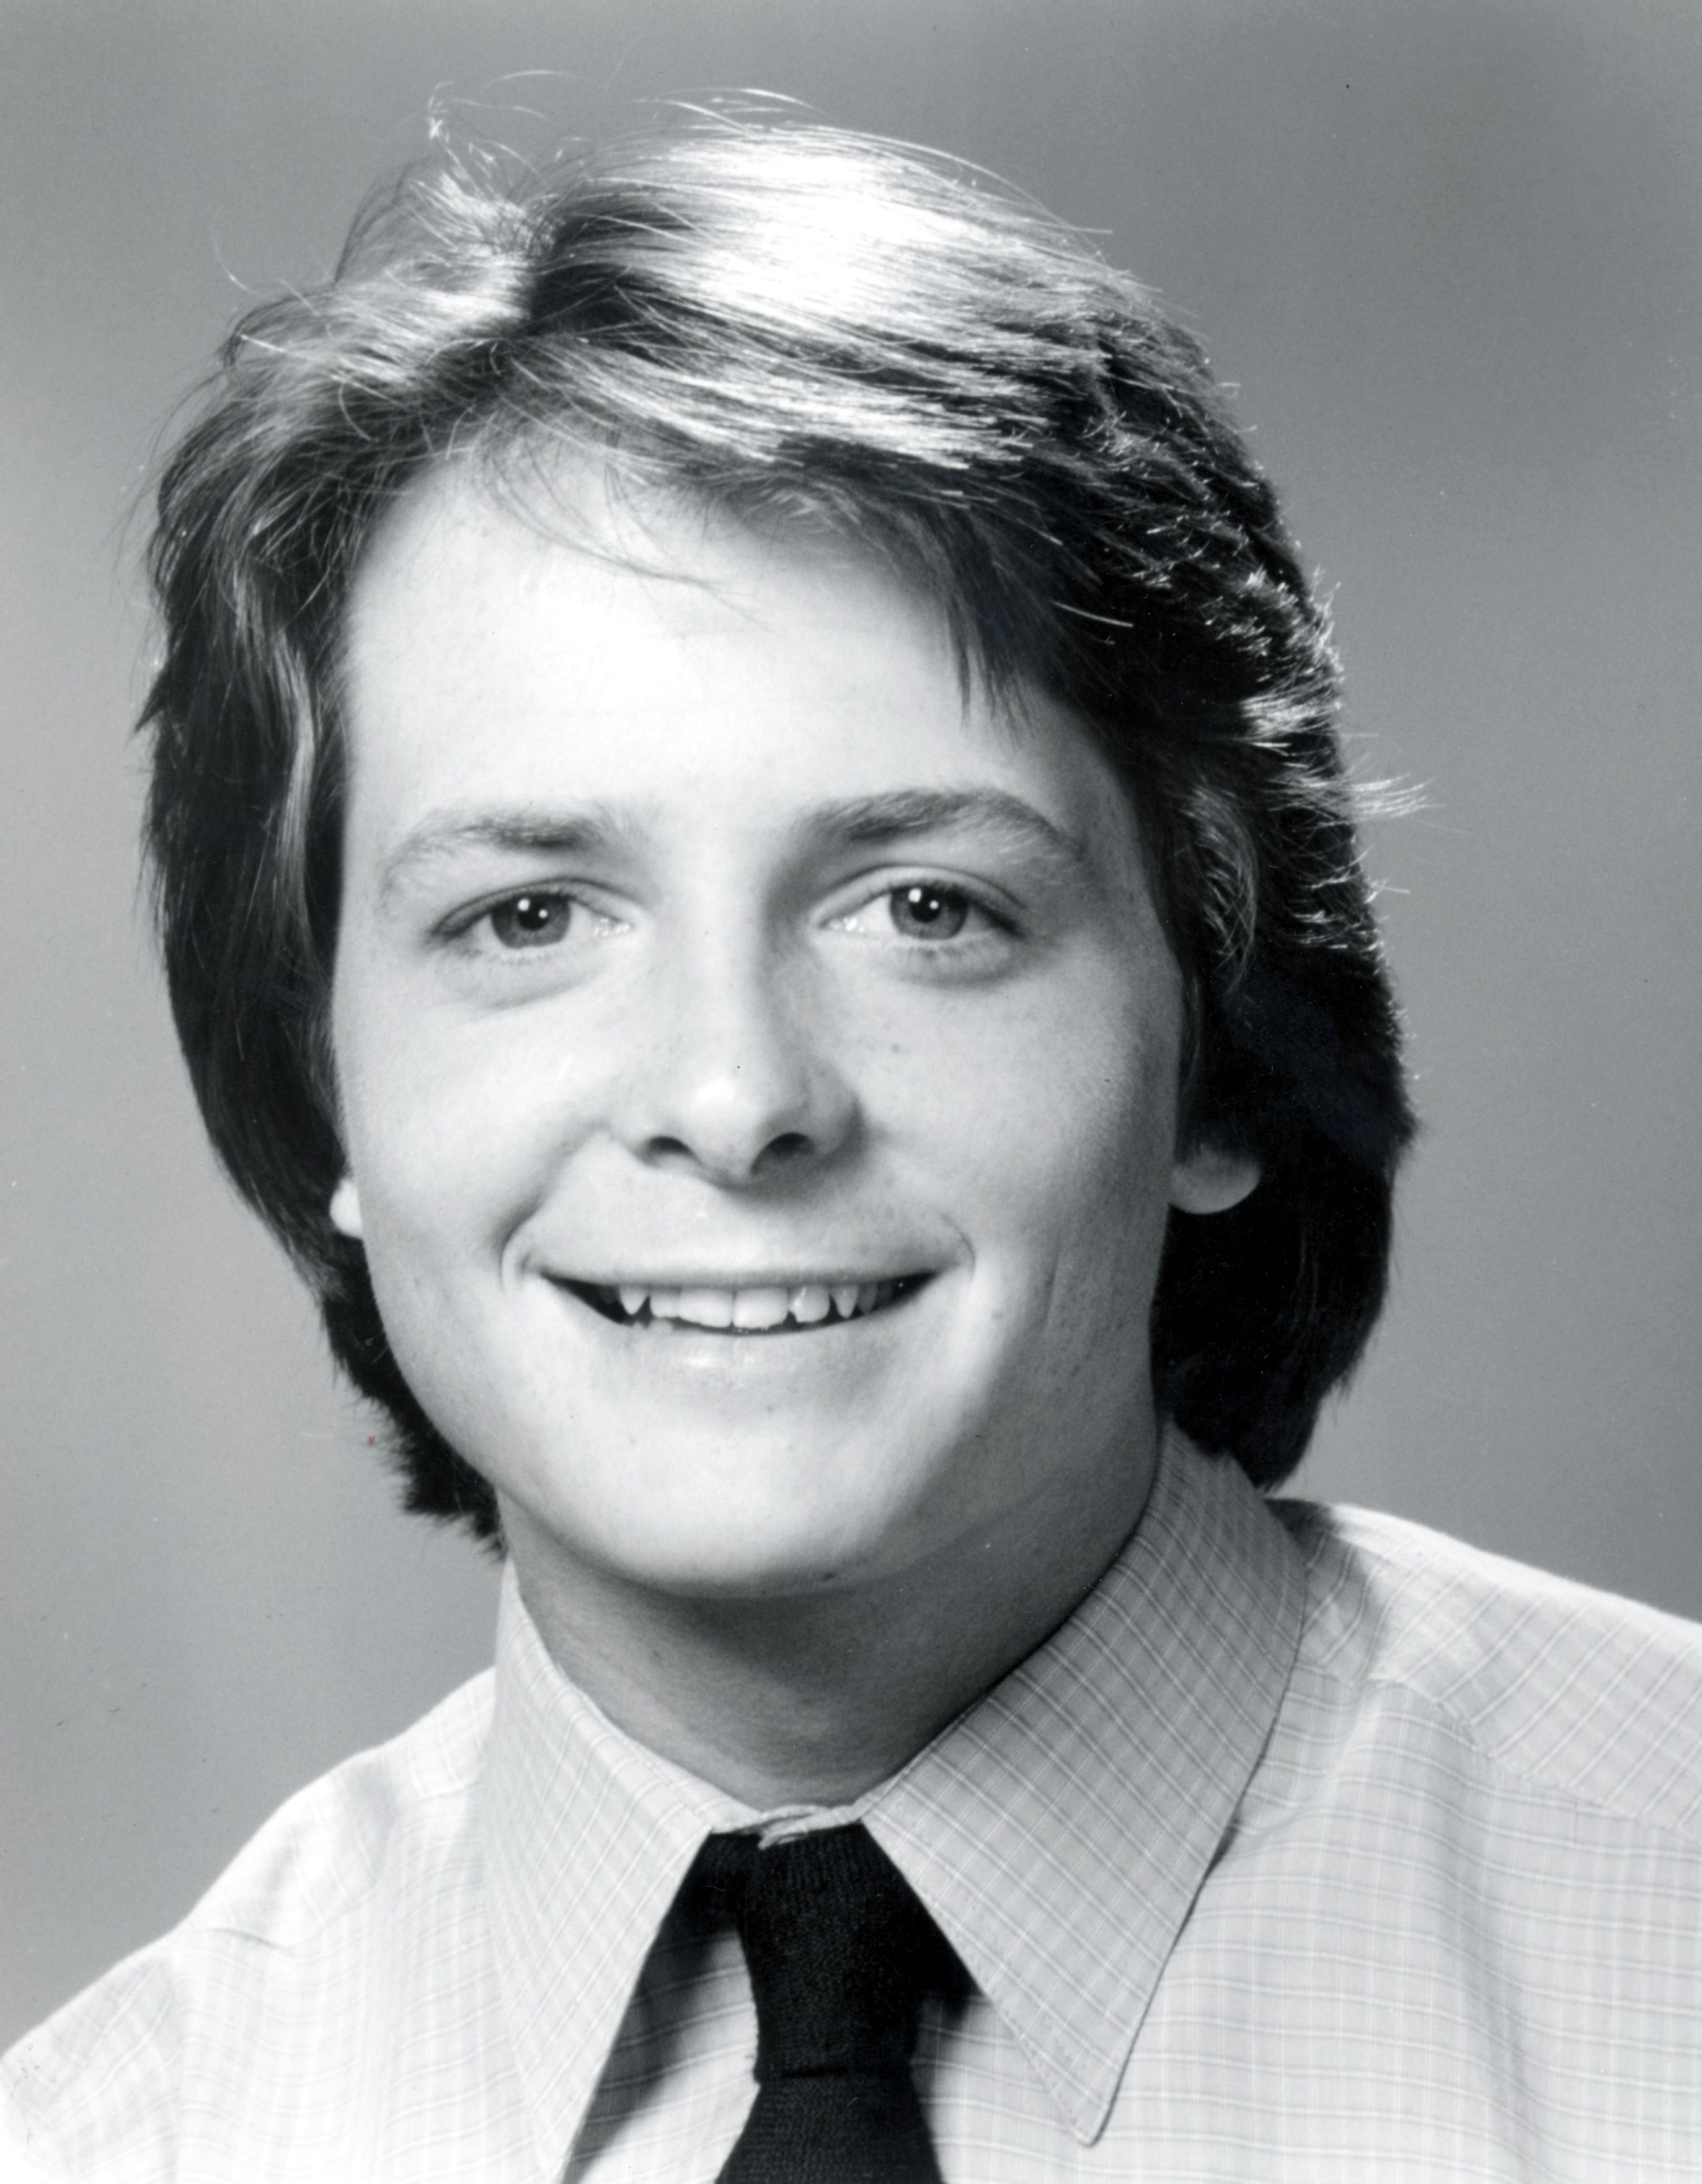 Michael J. Fox Is An Extraordinary And Very Famous